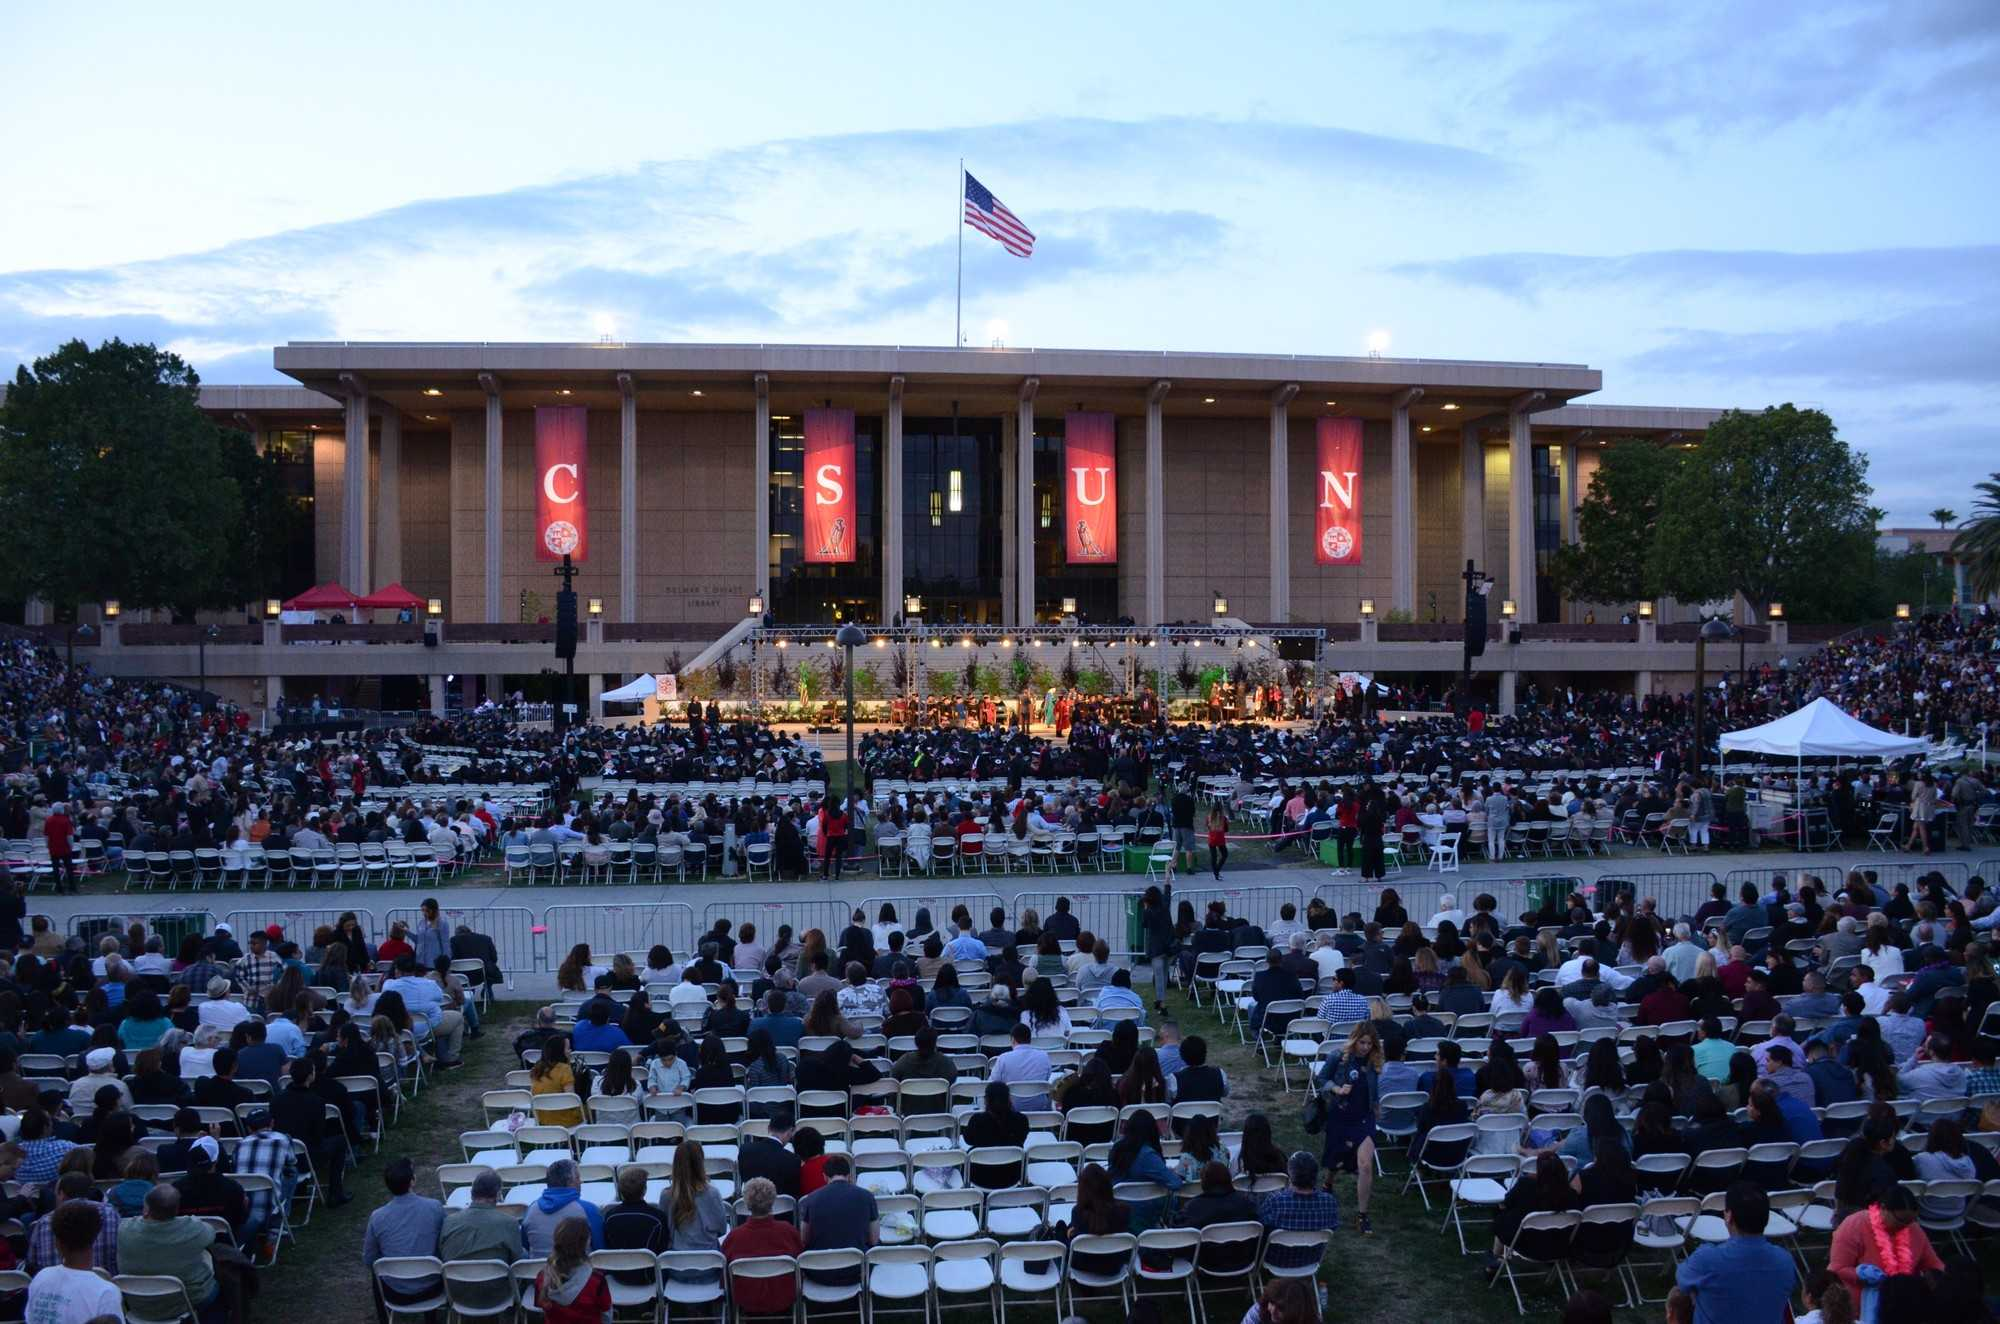 CSUN graduation shown on Oviatt Lawn